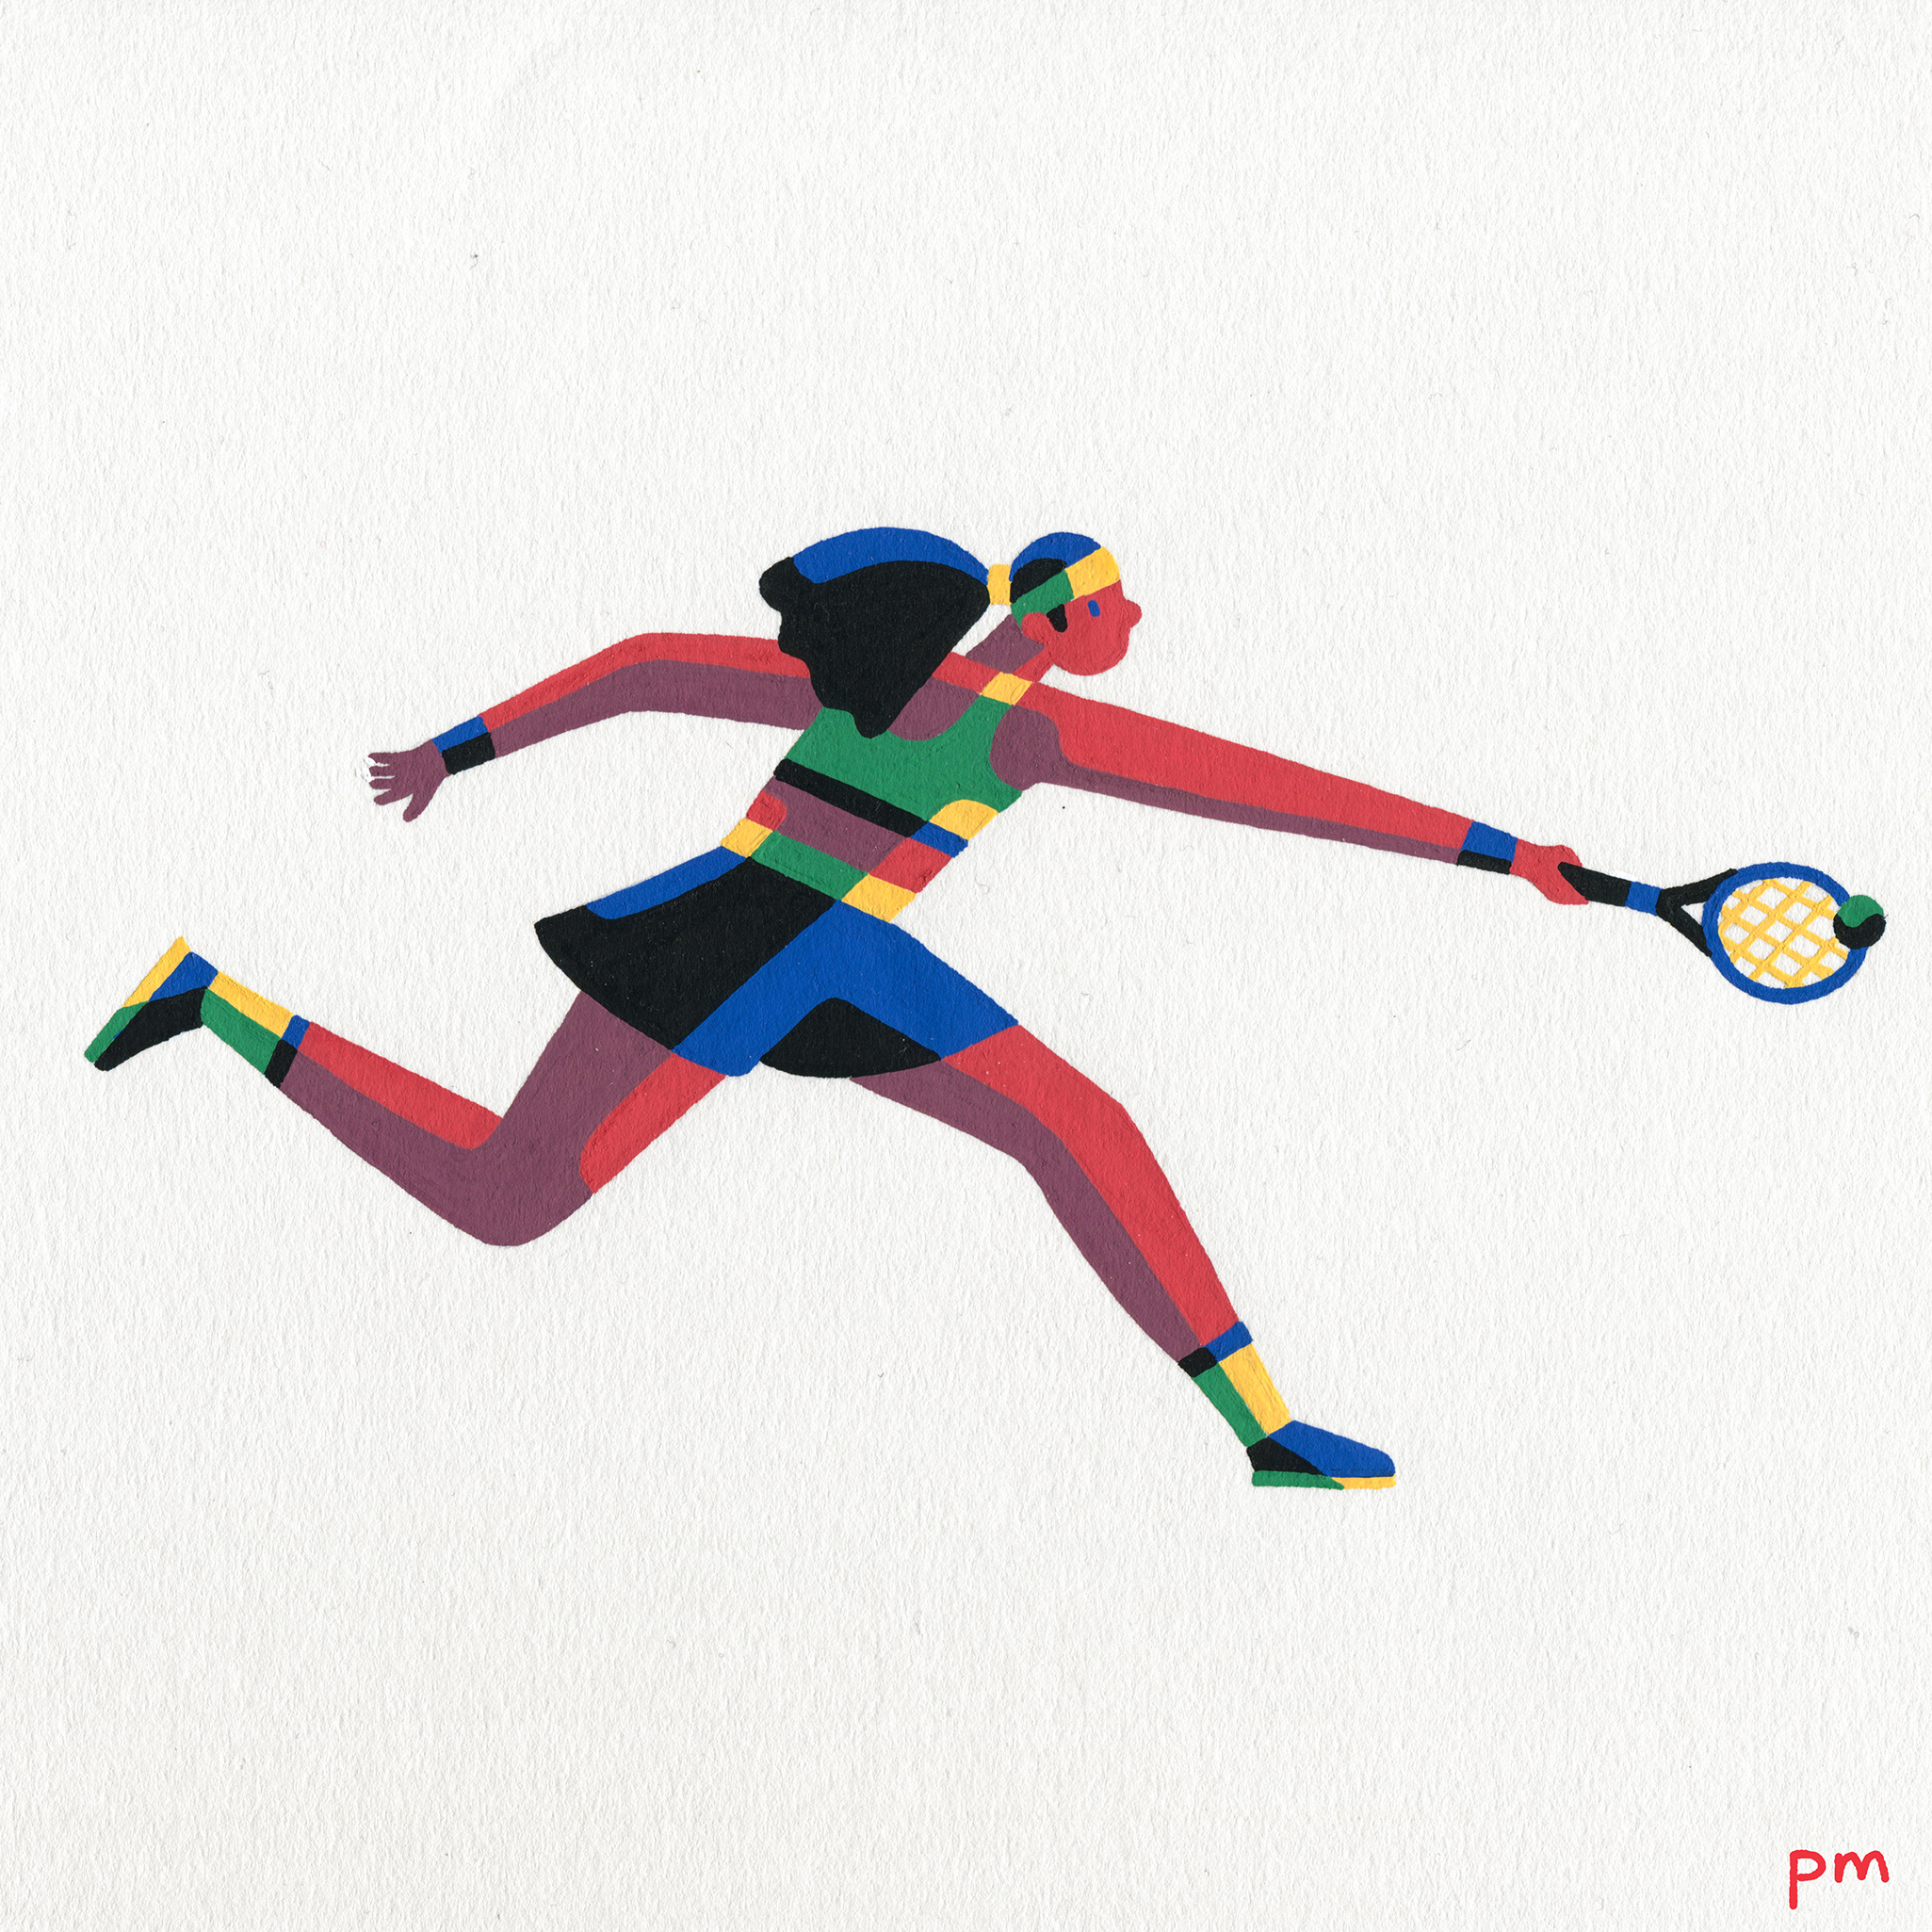 Inspired by Serena Williams and my love of the sport tennis, this illustration was created using acrylic based posca markers